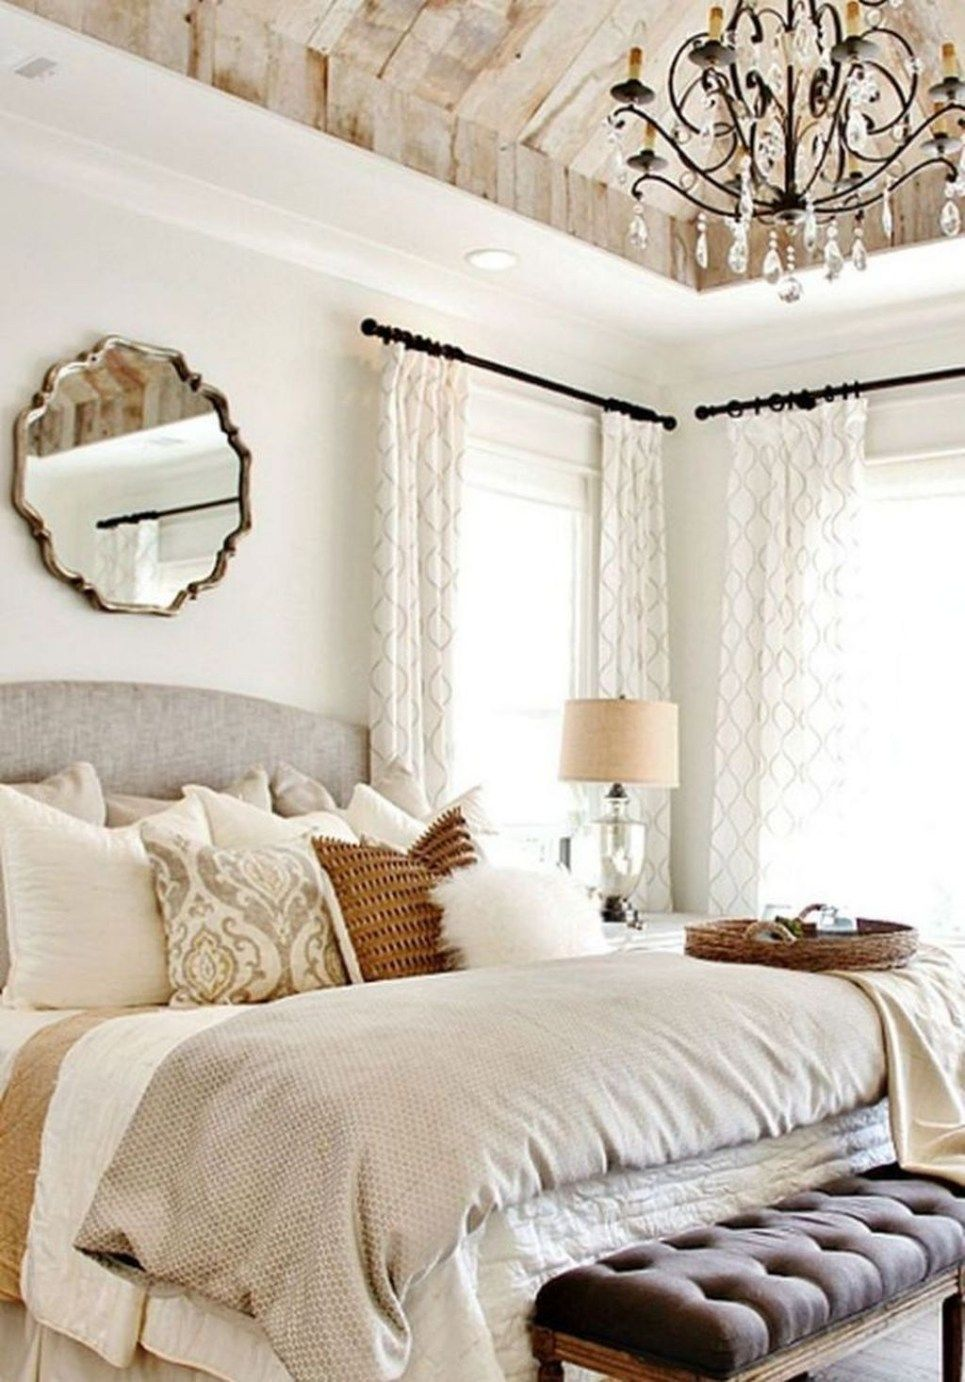 Awesome Master Bedroom Decorating Ideas 45 Home Decor Bedroom Master Bedrooms Decor Bedroom Vintage